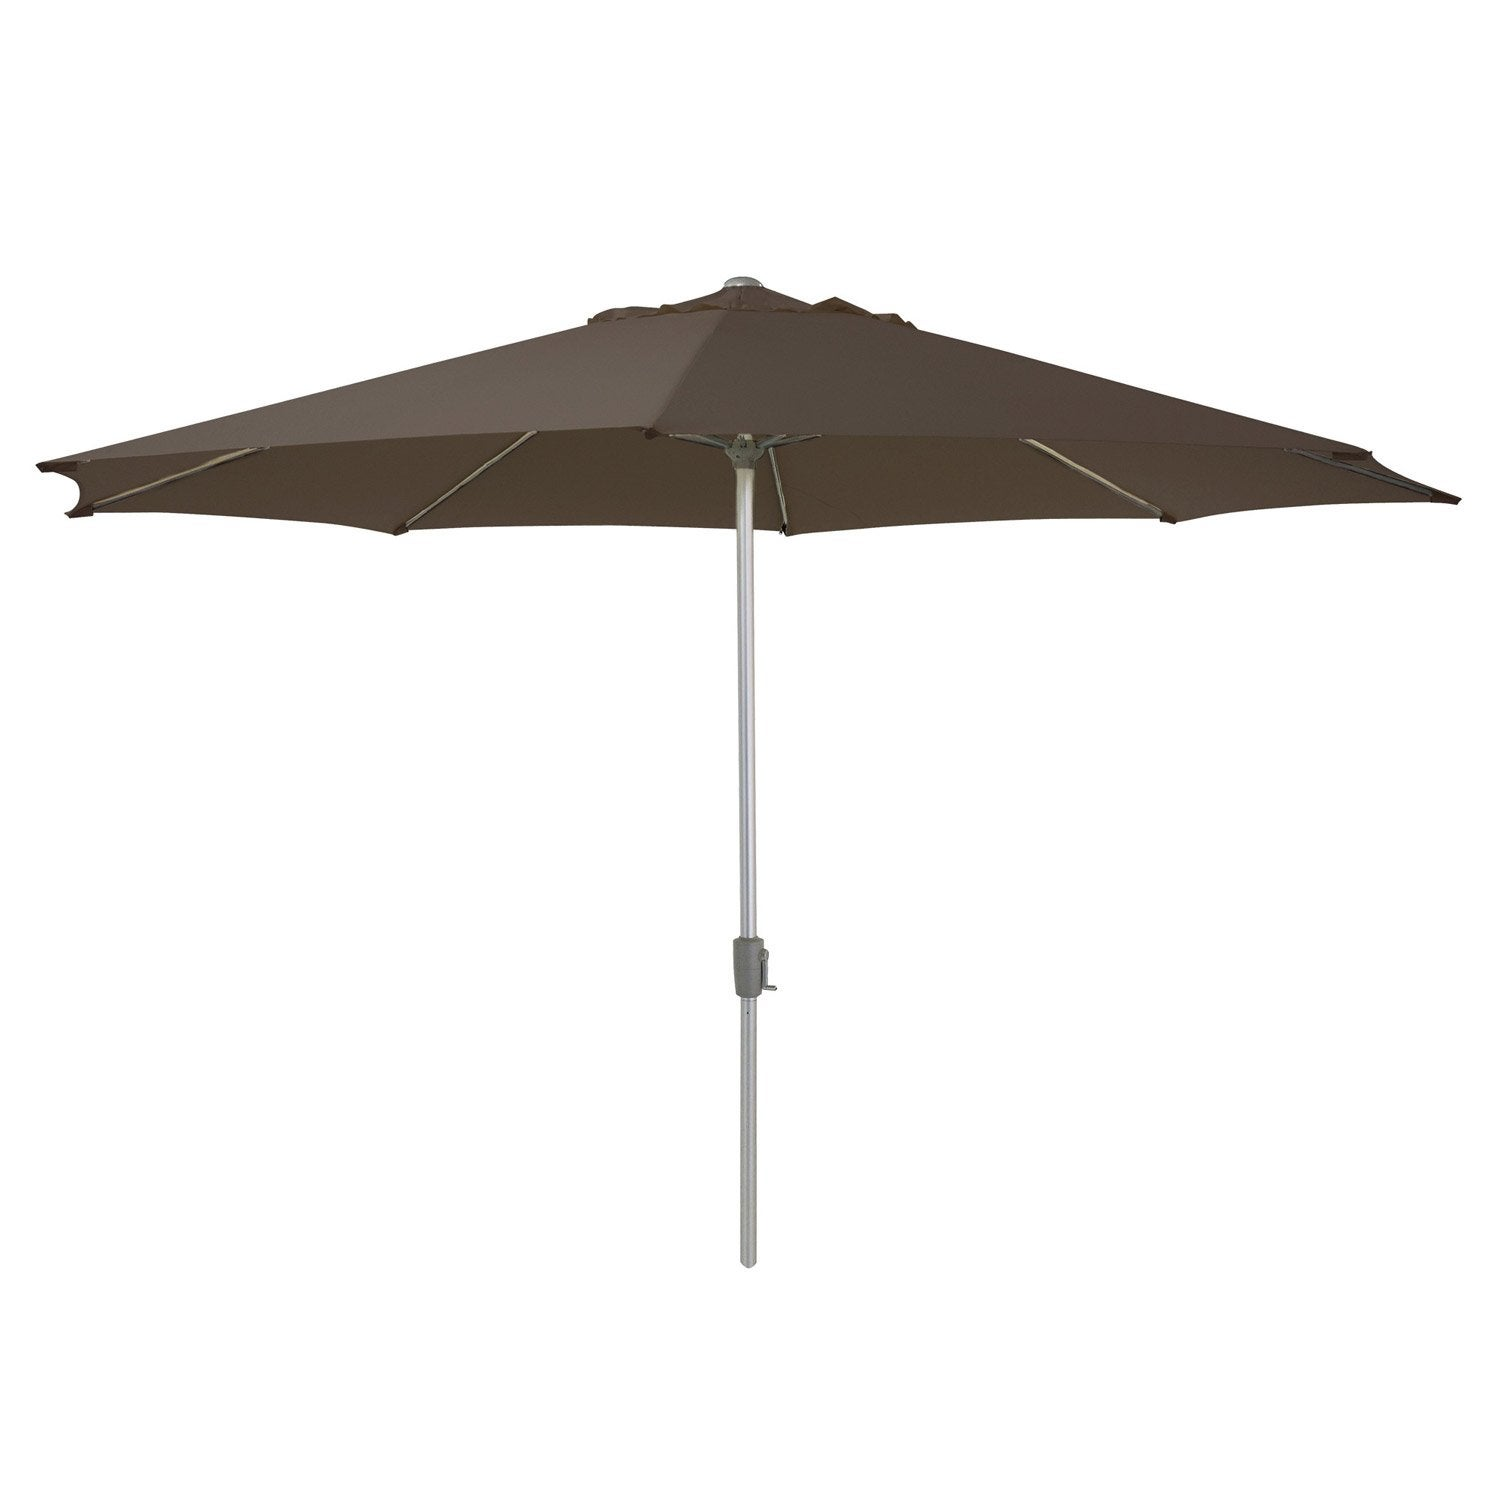 parasol deport simple th and th century parasol fashions with parasol deport amazing parasol. Black Bedroom Furniture Sets. Home Design Ideas